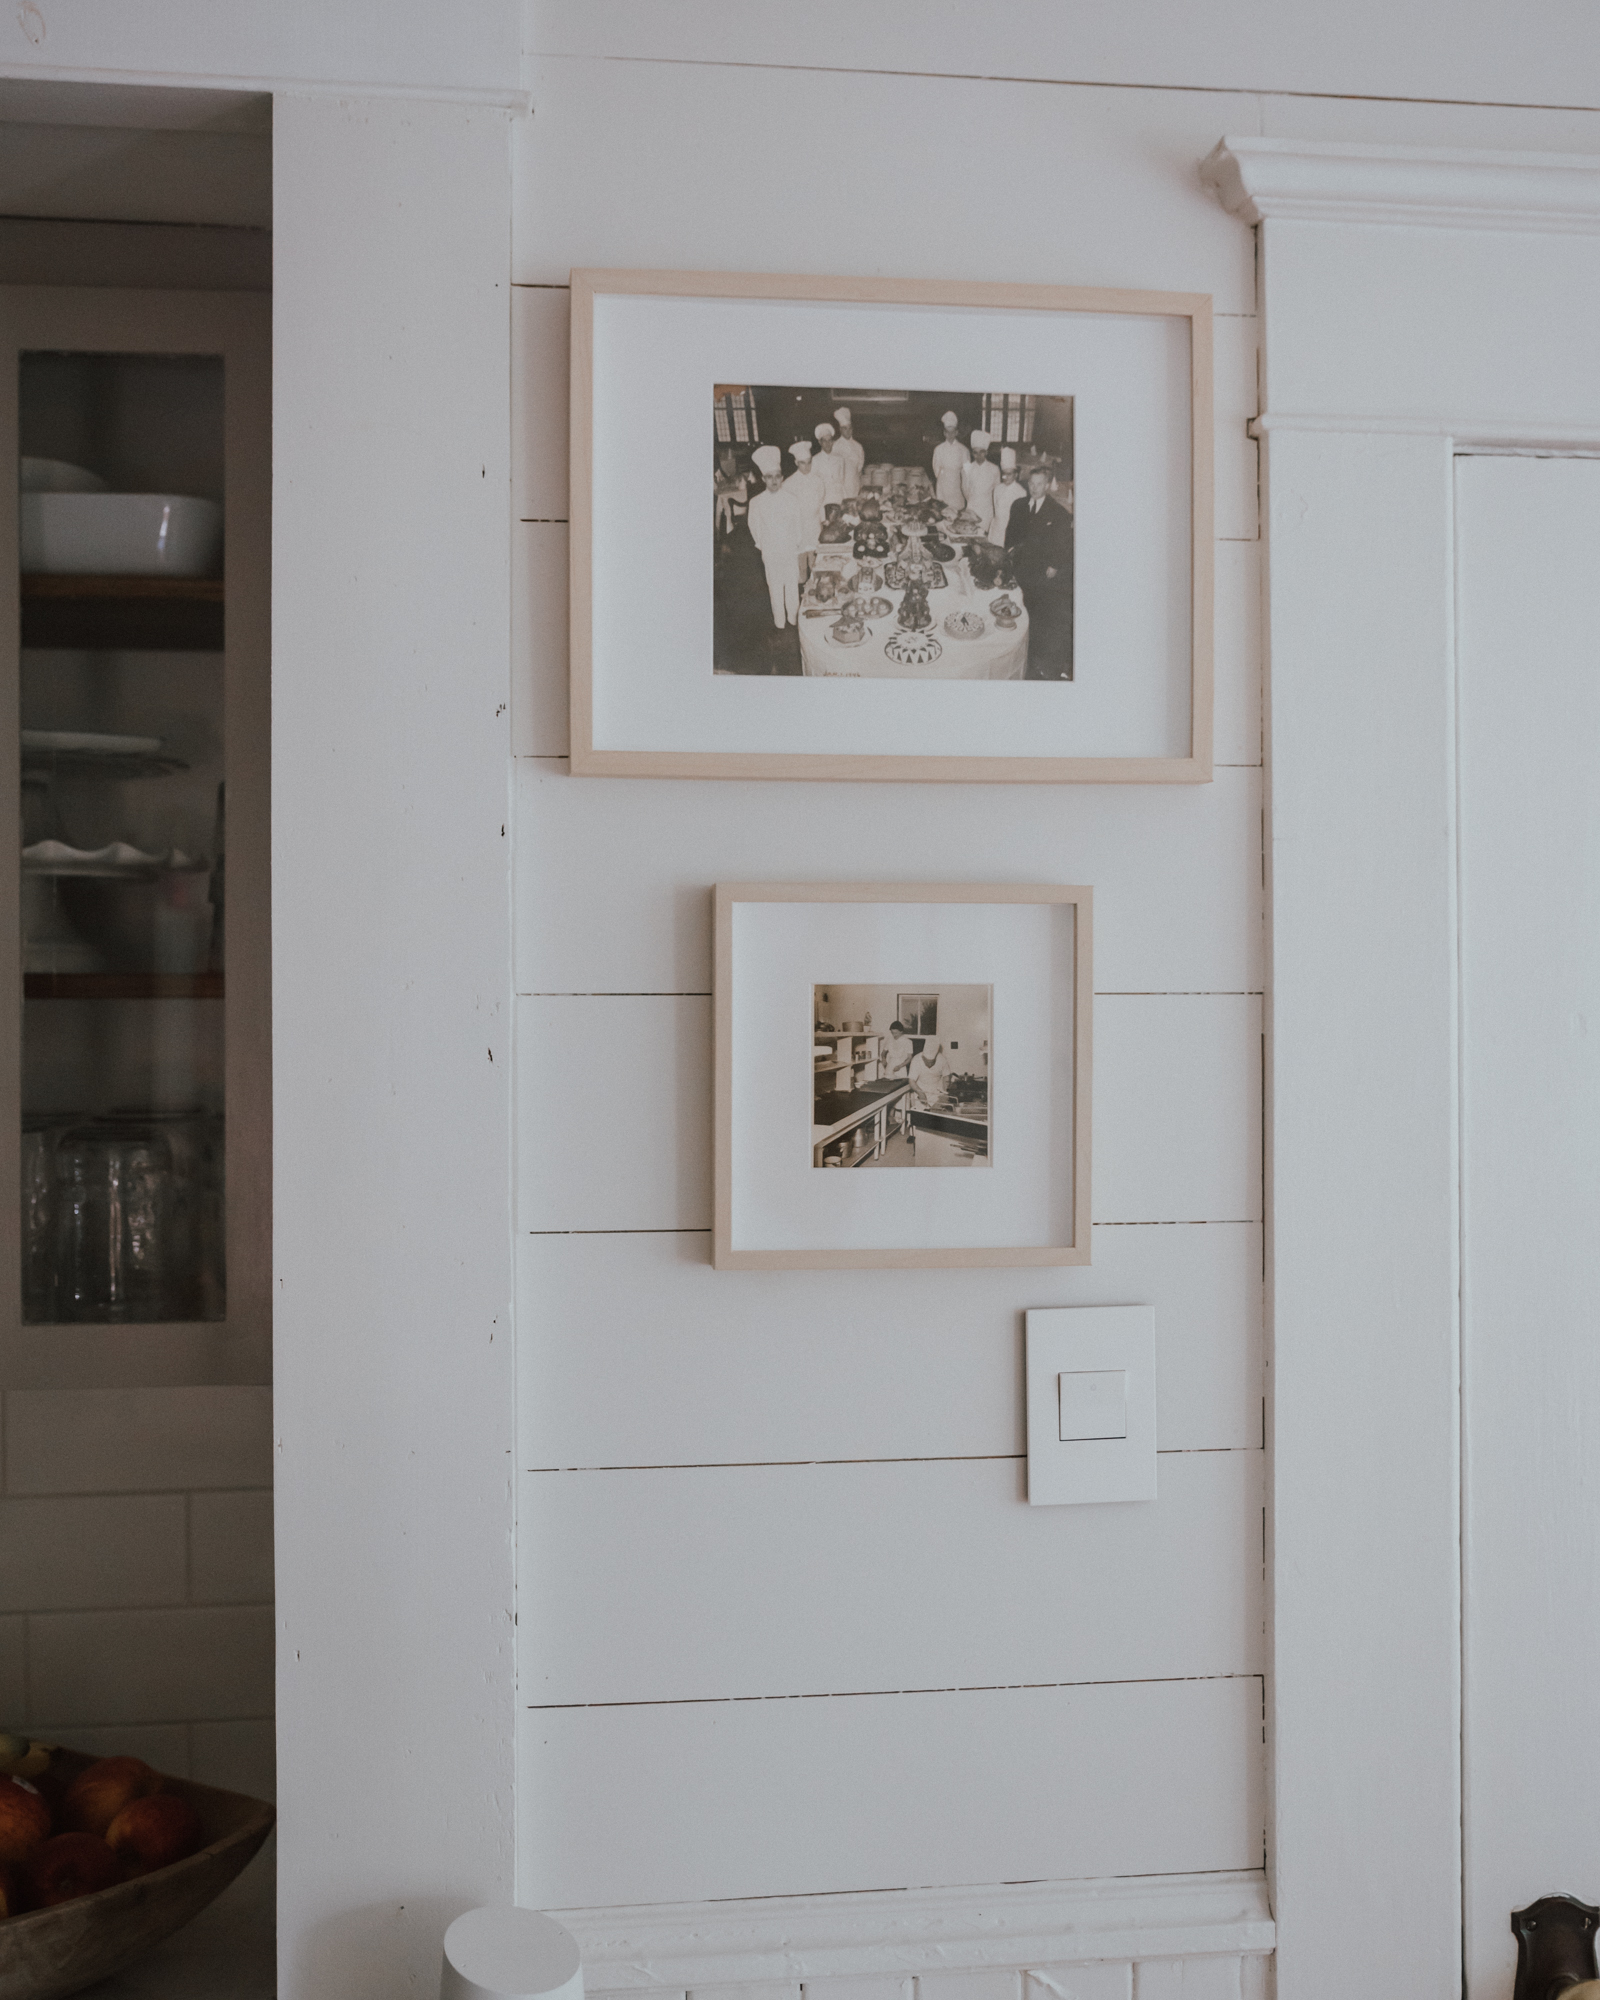 The Wild Decoelis| Our Kitchen Reno : Before and after | vintage photos